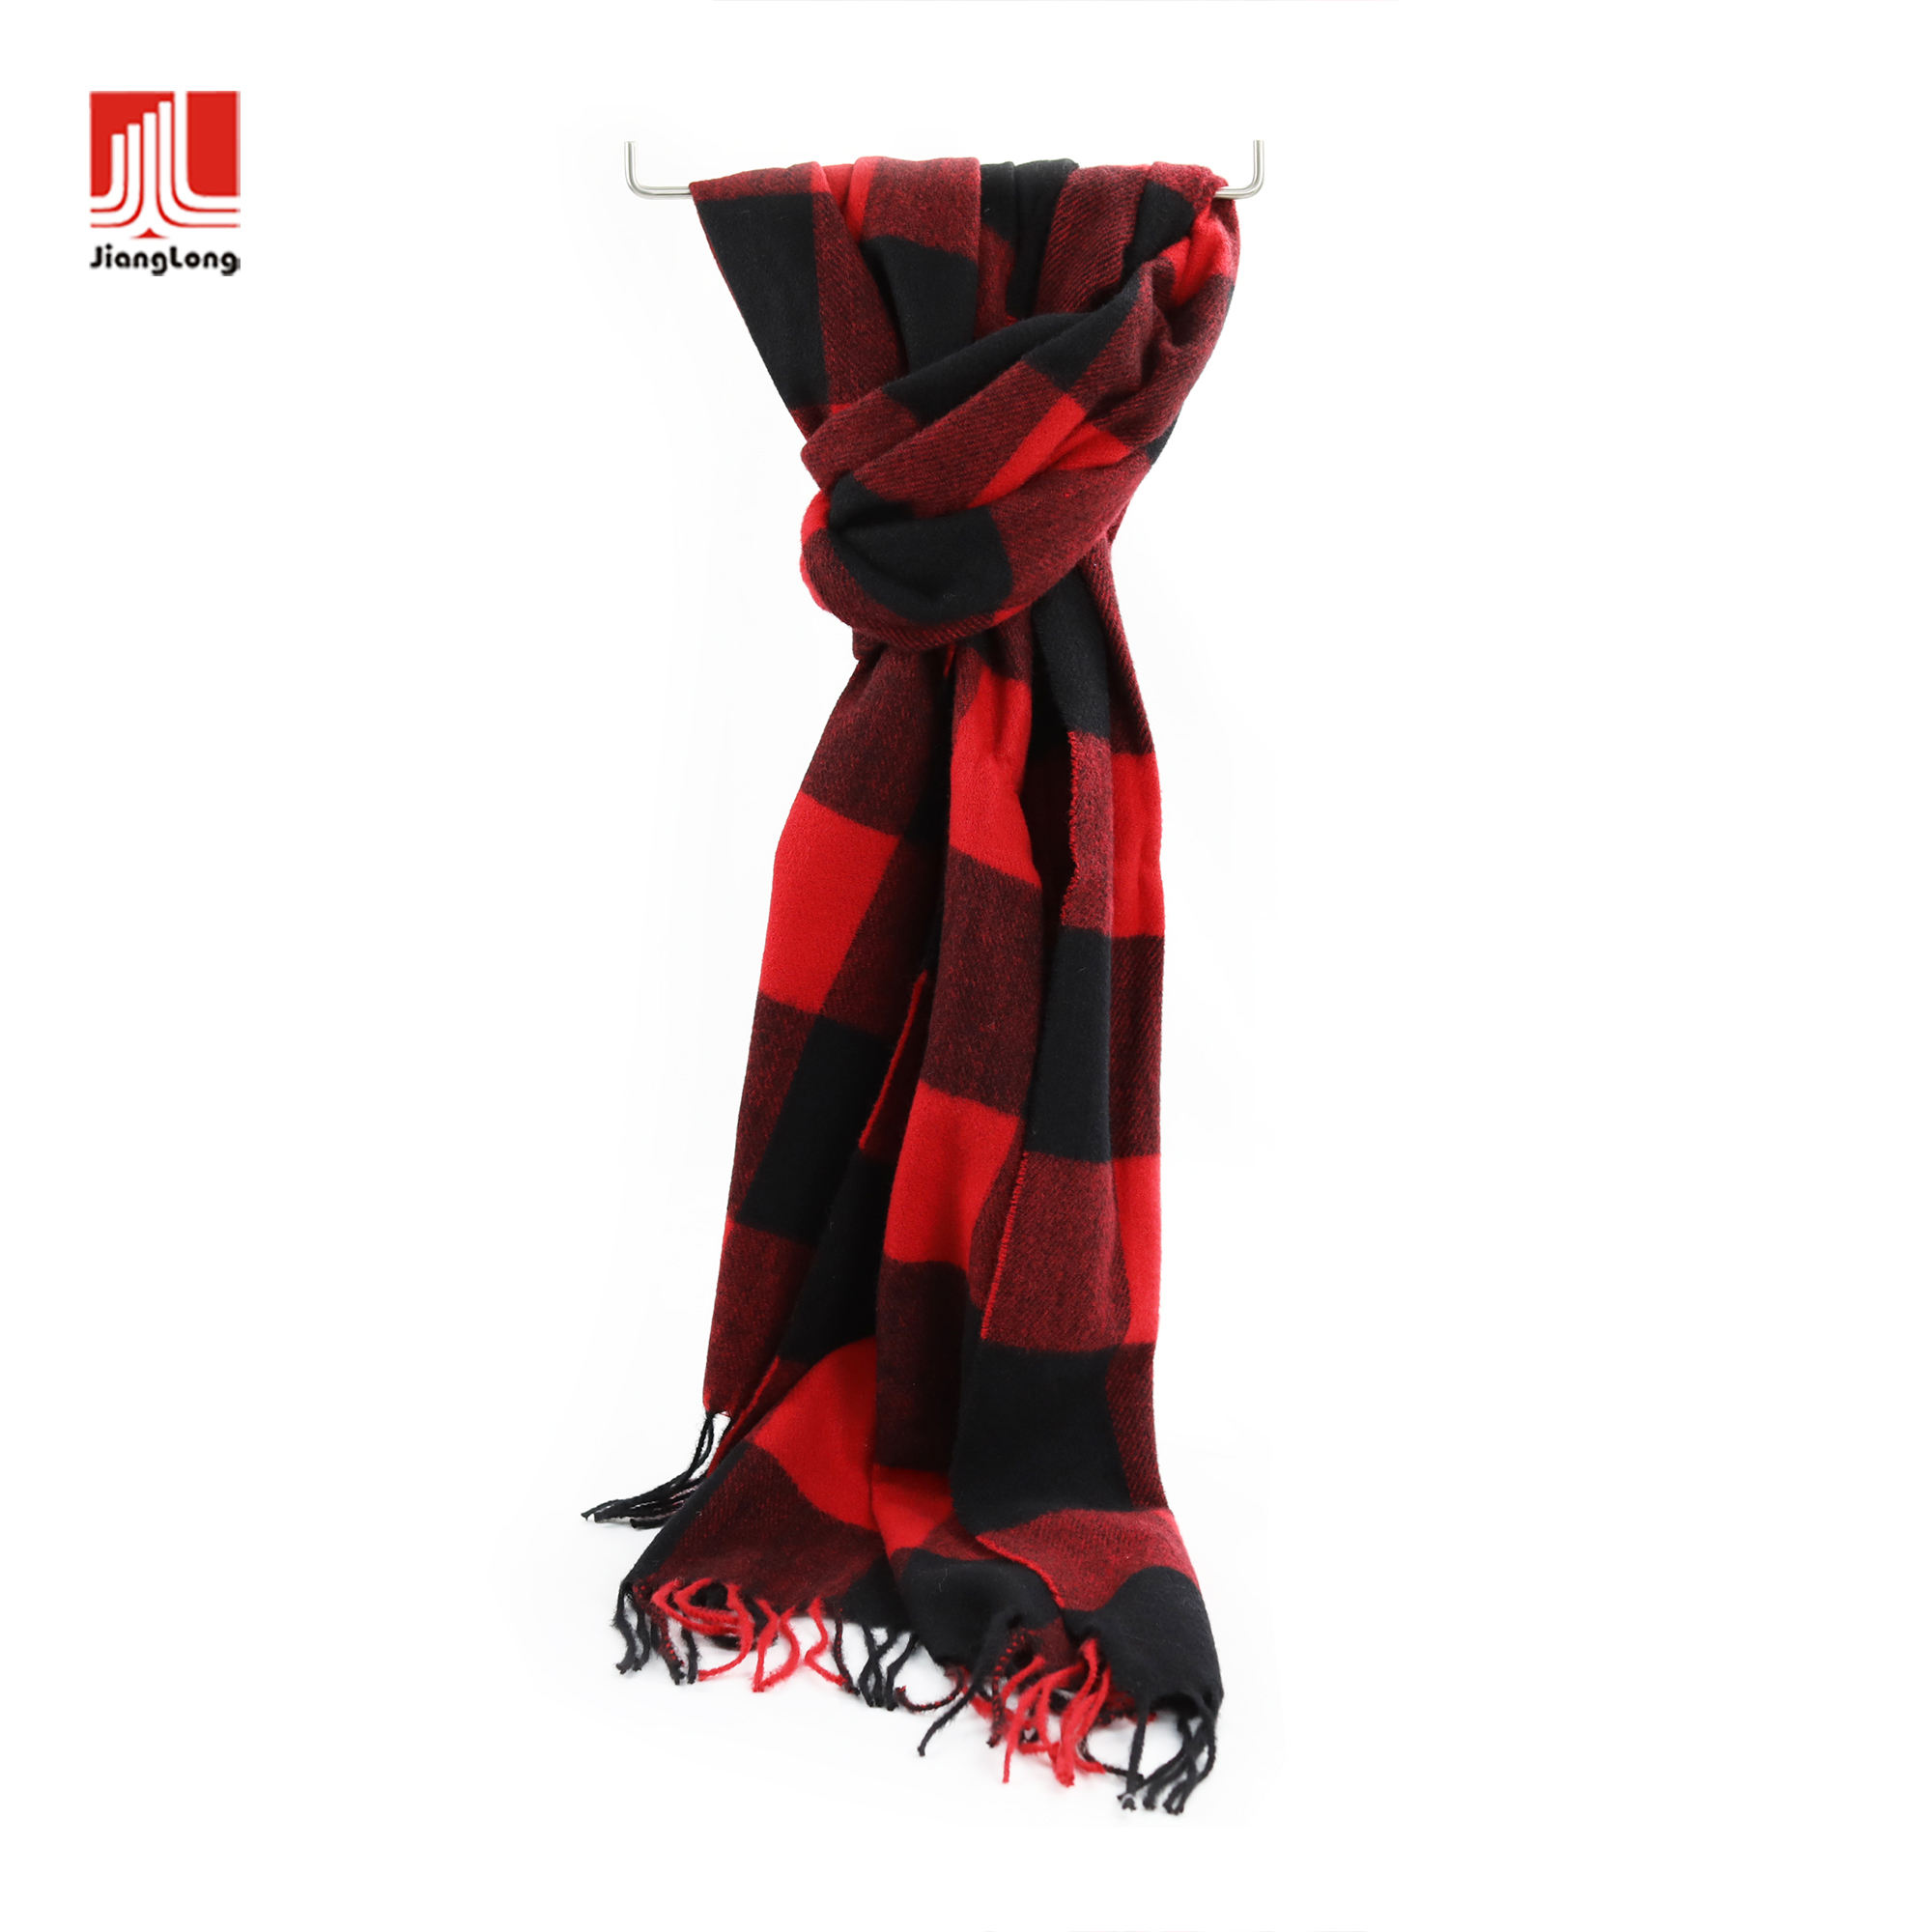 Winter warm buffalo plaid designer scarf styles classic check plaids woven shawl scarf super soft scupuncture brushed pashmina